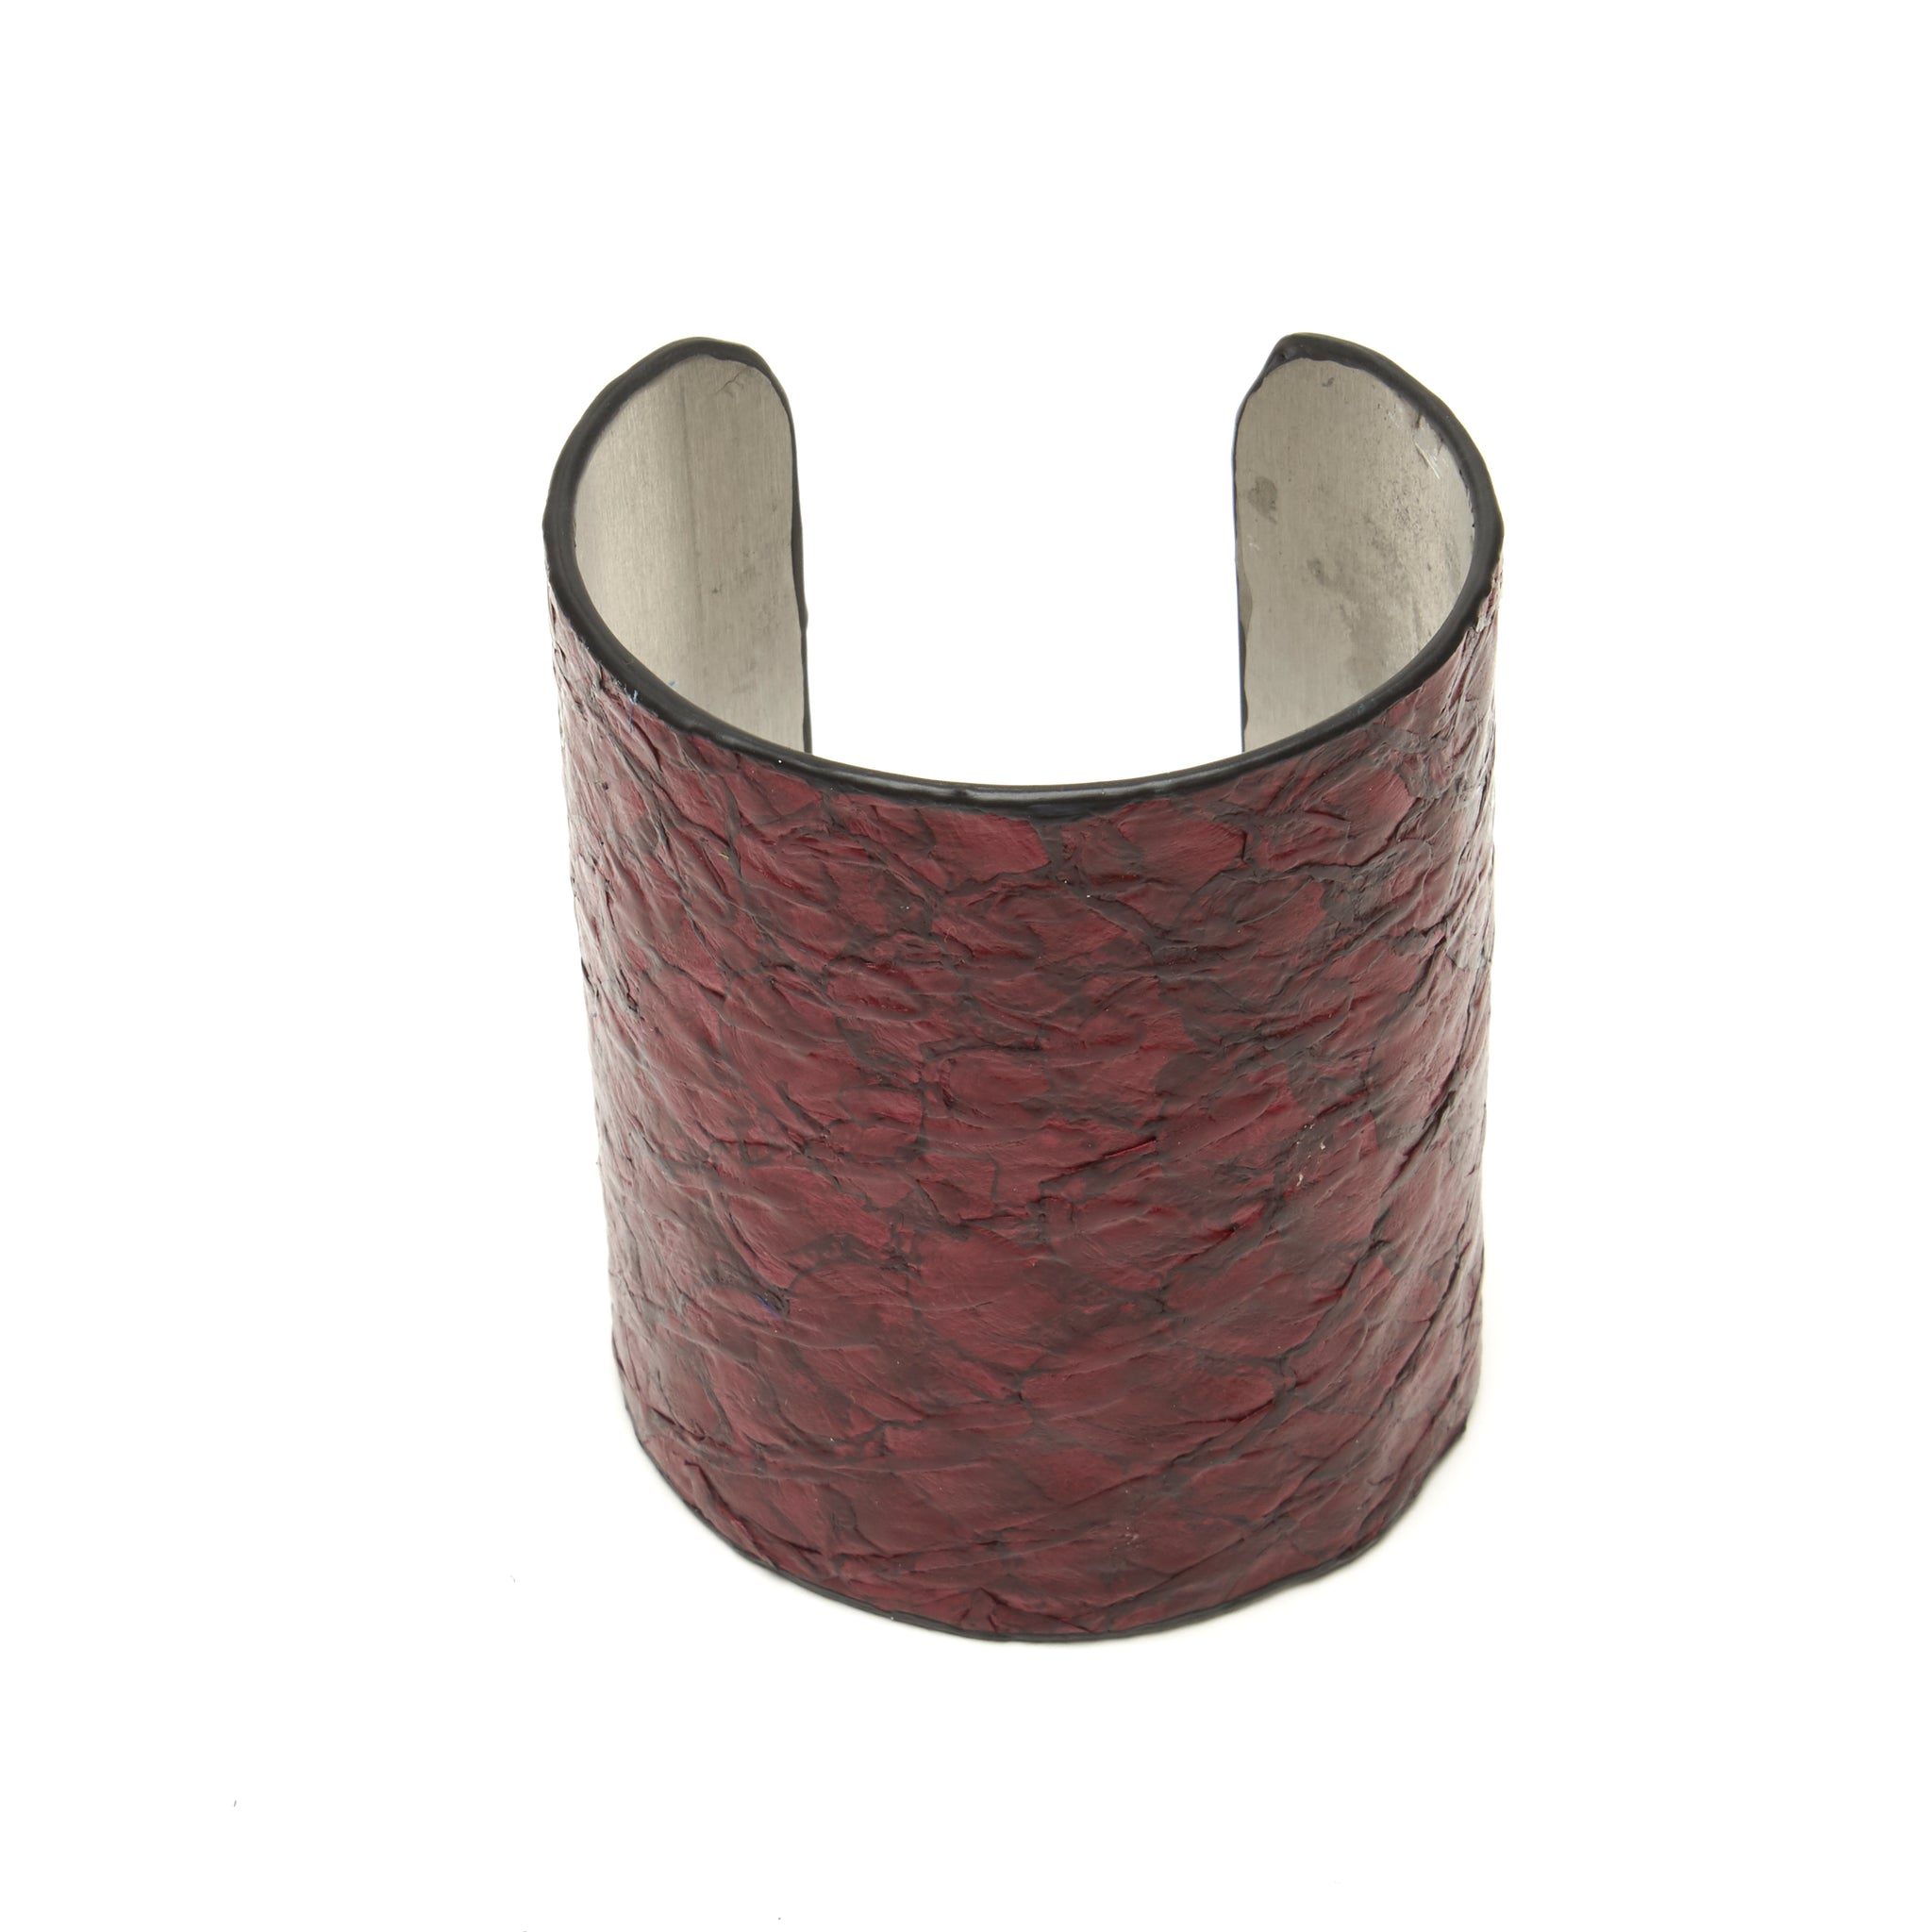 FISH LEATHER OVER ALUMINUM CUFF. BY NYET JEWELRY.